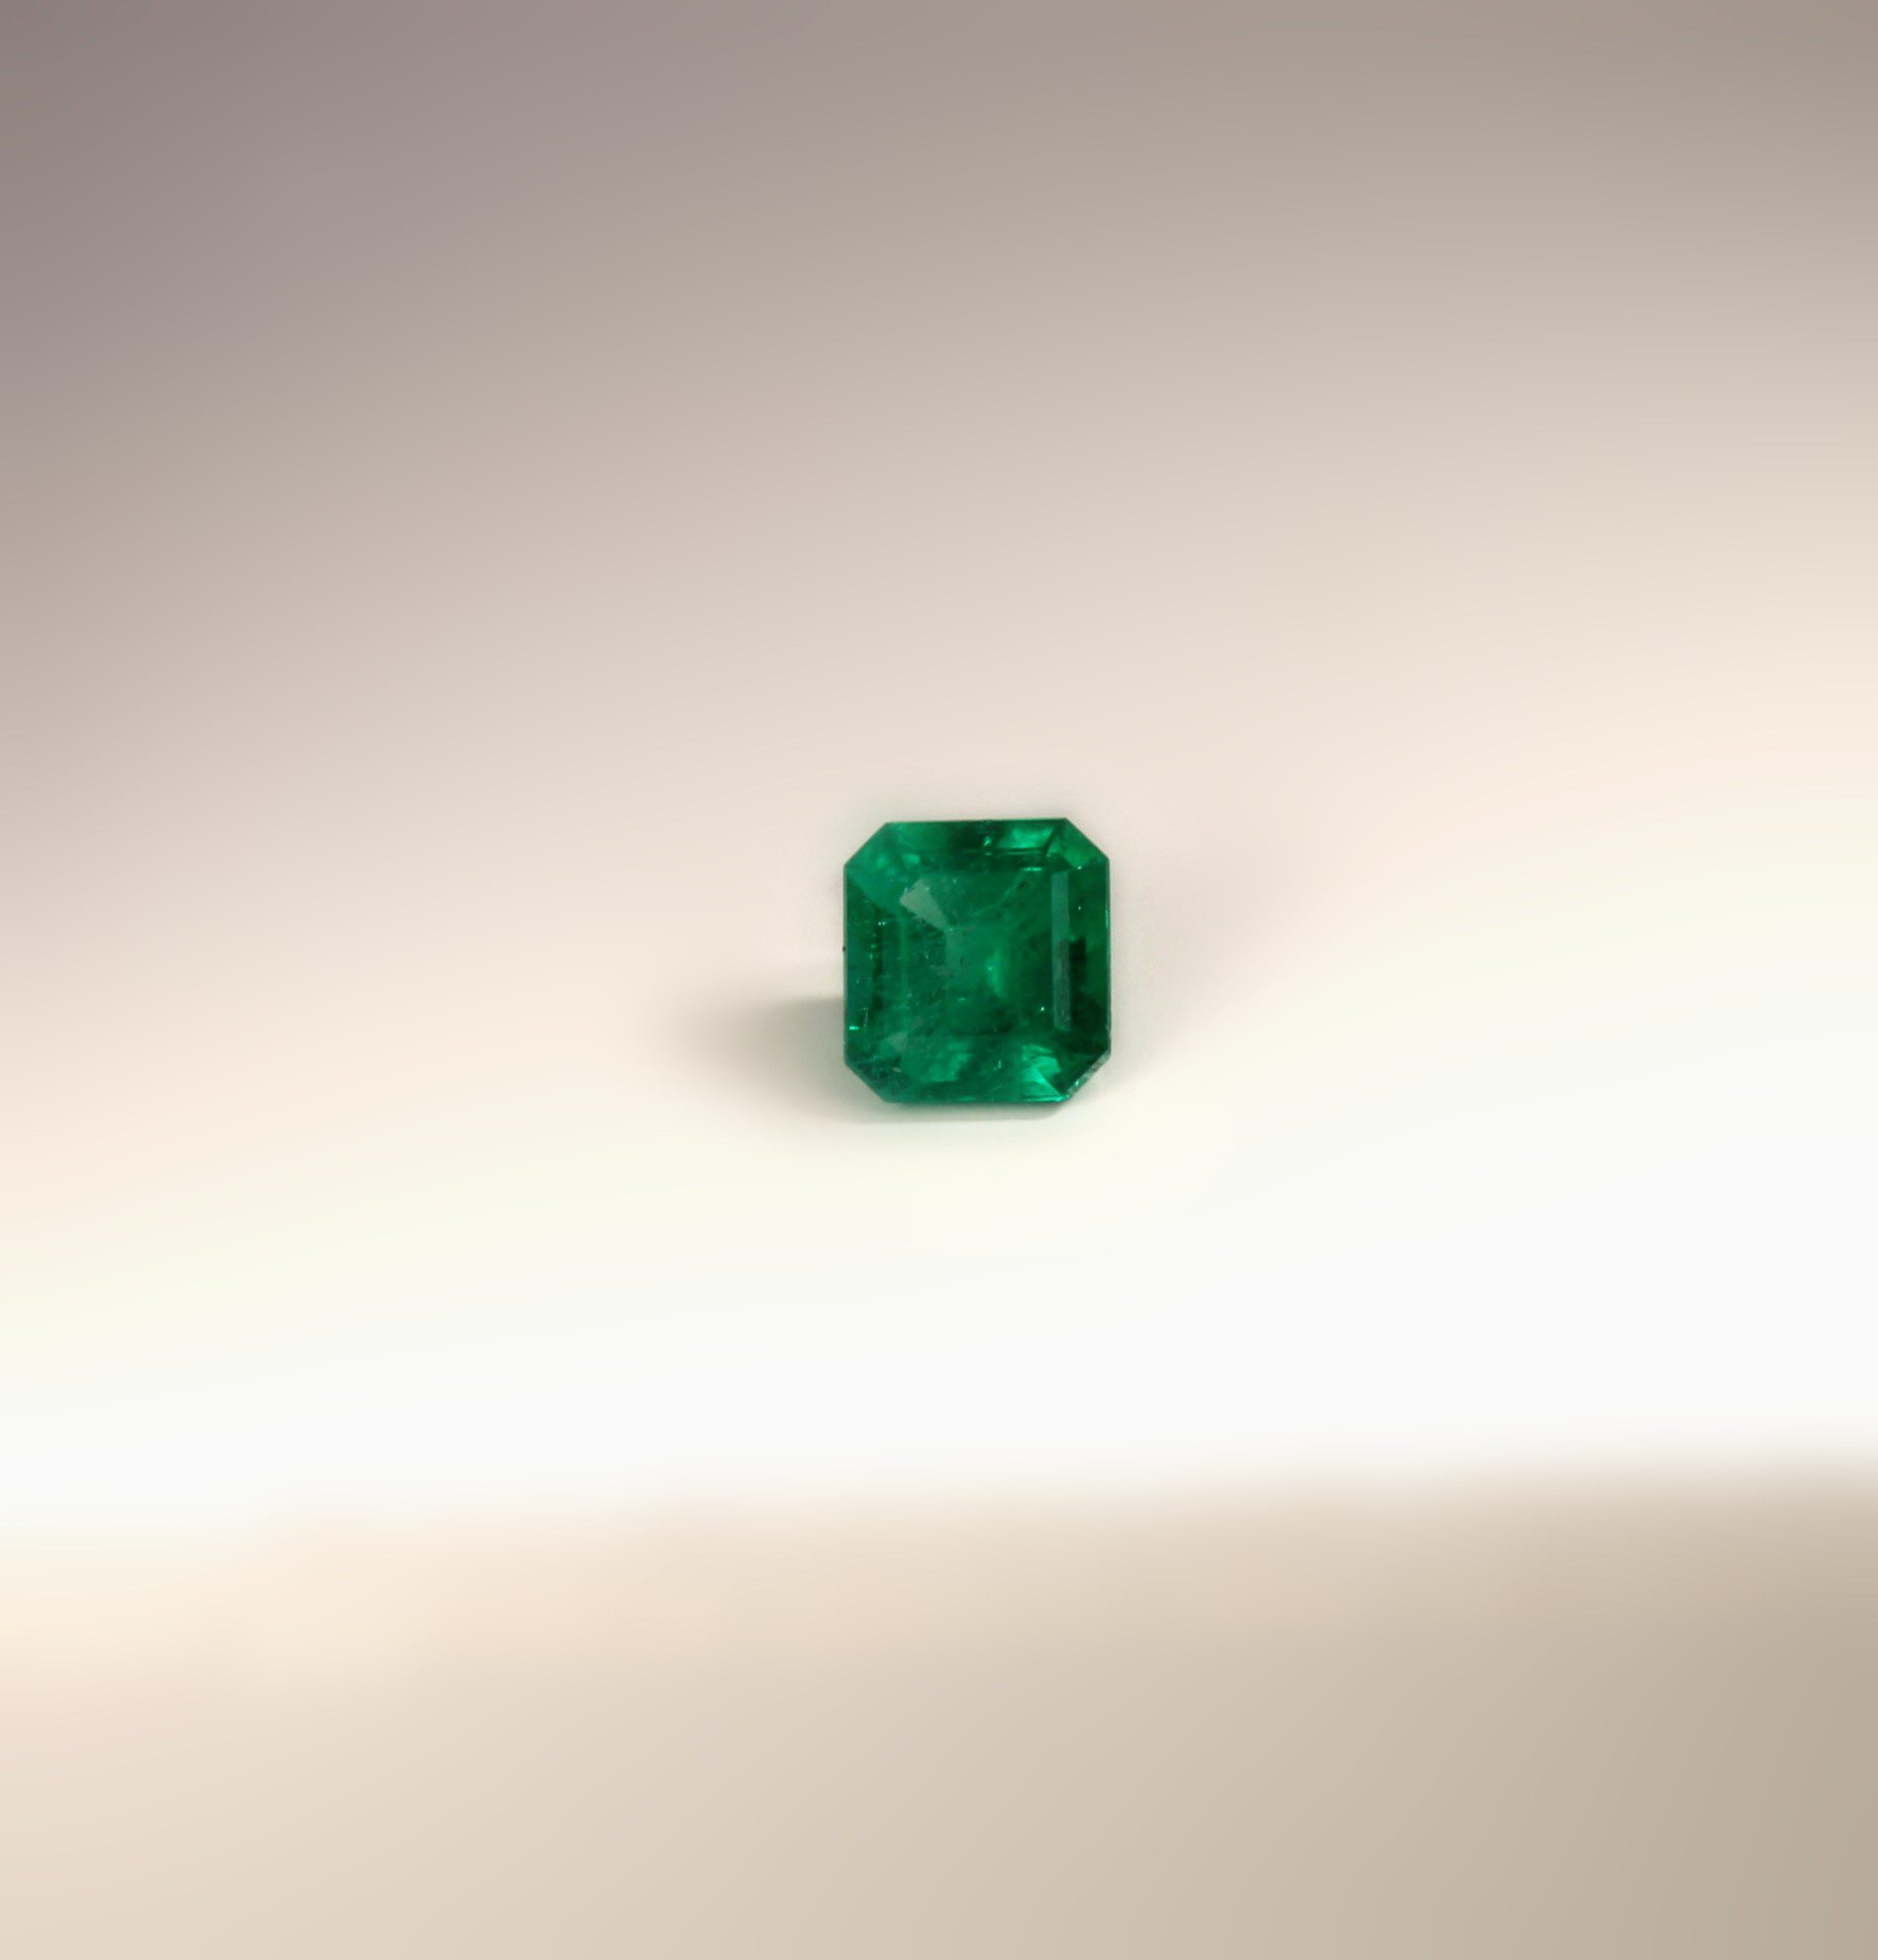 Emerald buying guide international gem society igs classic emerald cut emerald emerald buying guide nvjuhfo Images